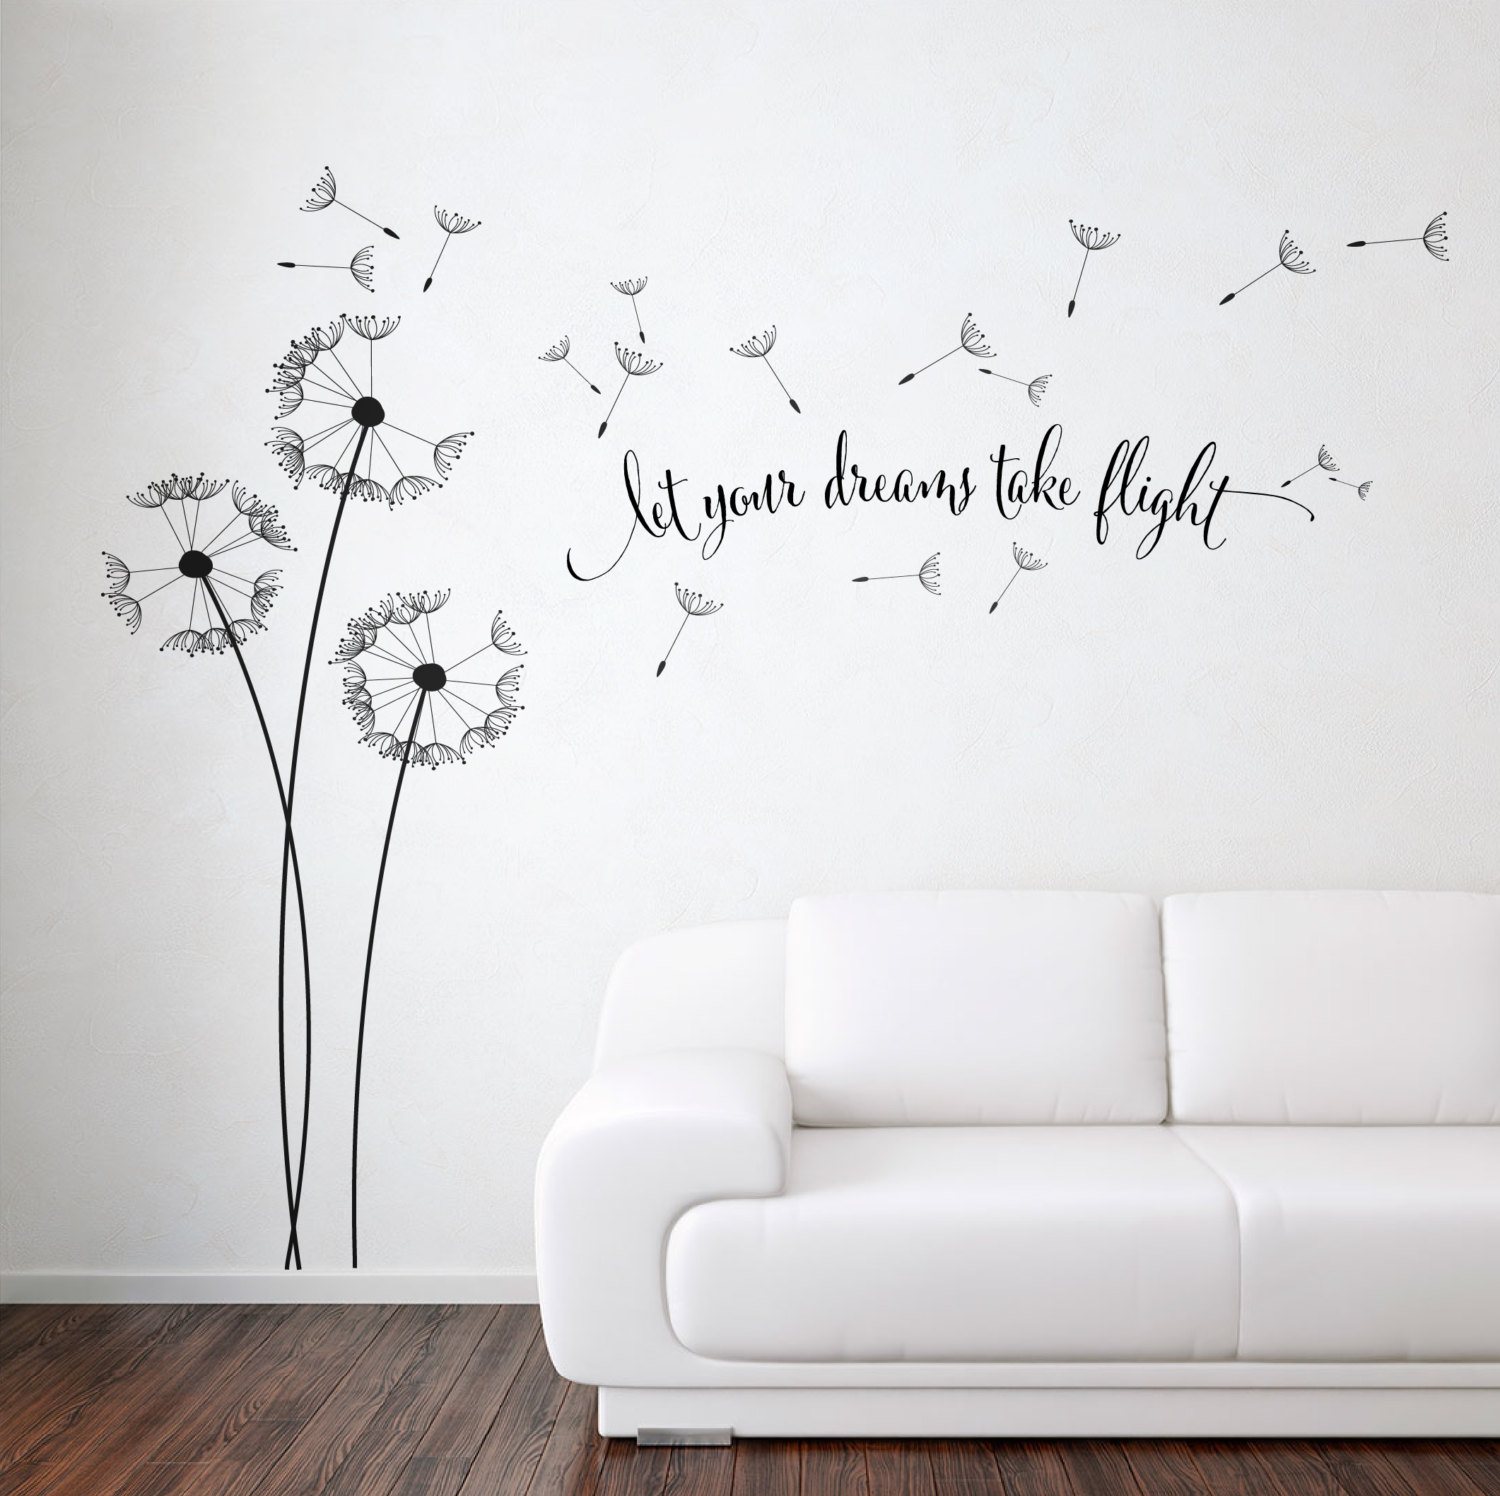 Captivating Home / Wall Stickers